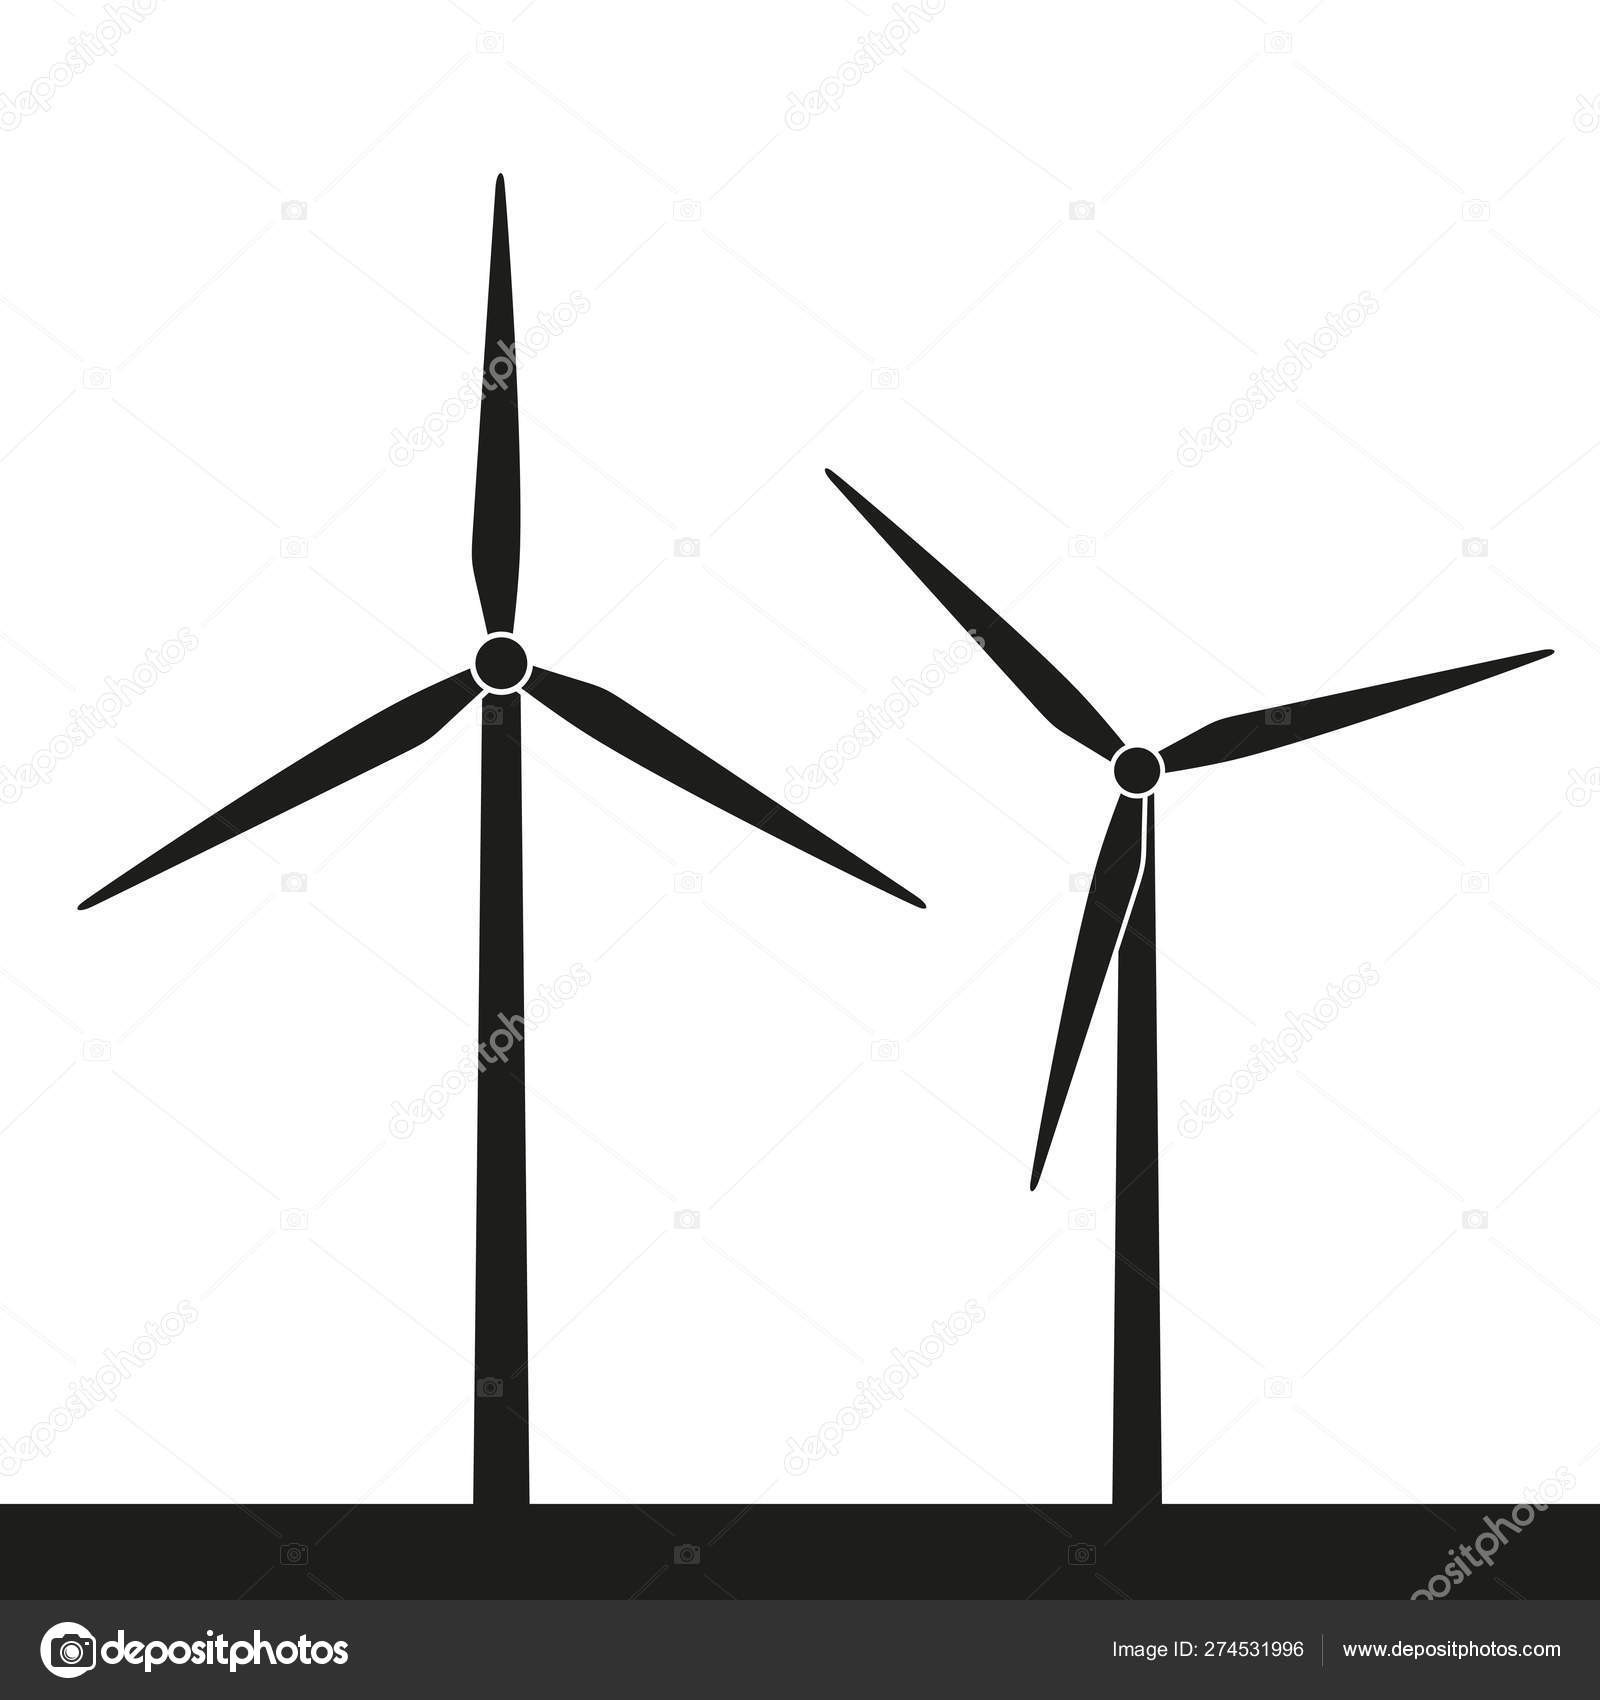 hight resolution of windmill silhouette icon wind power energy stock vector